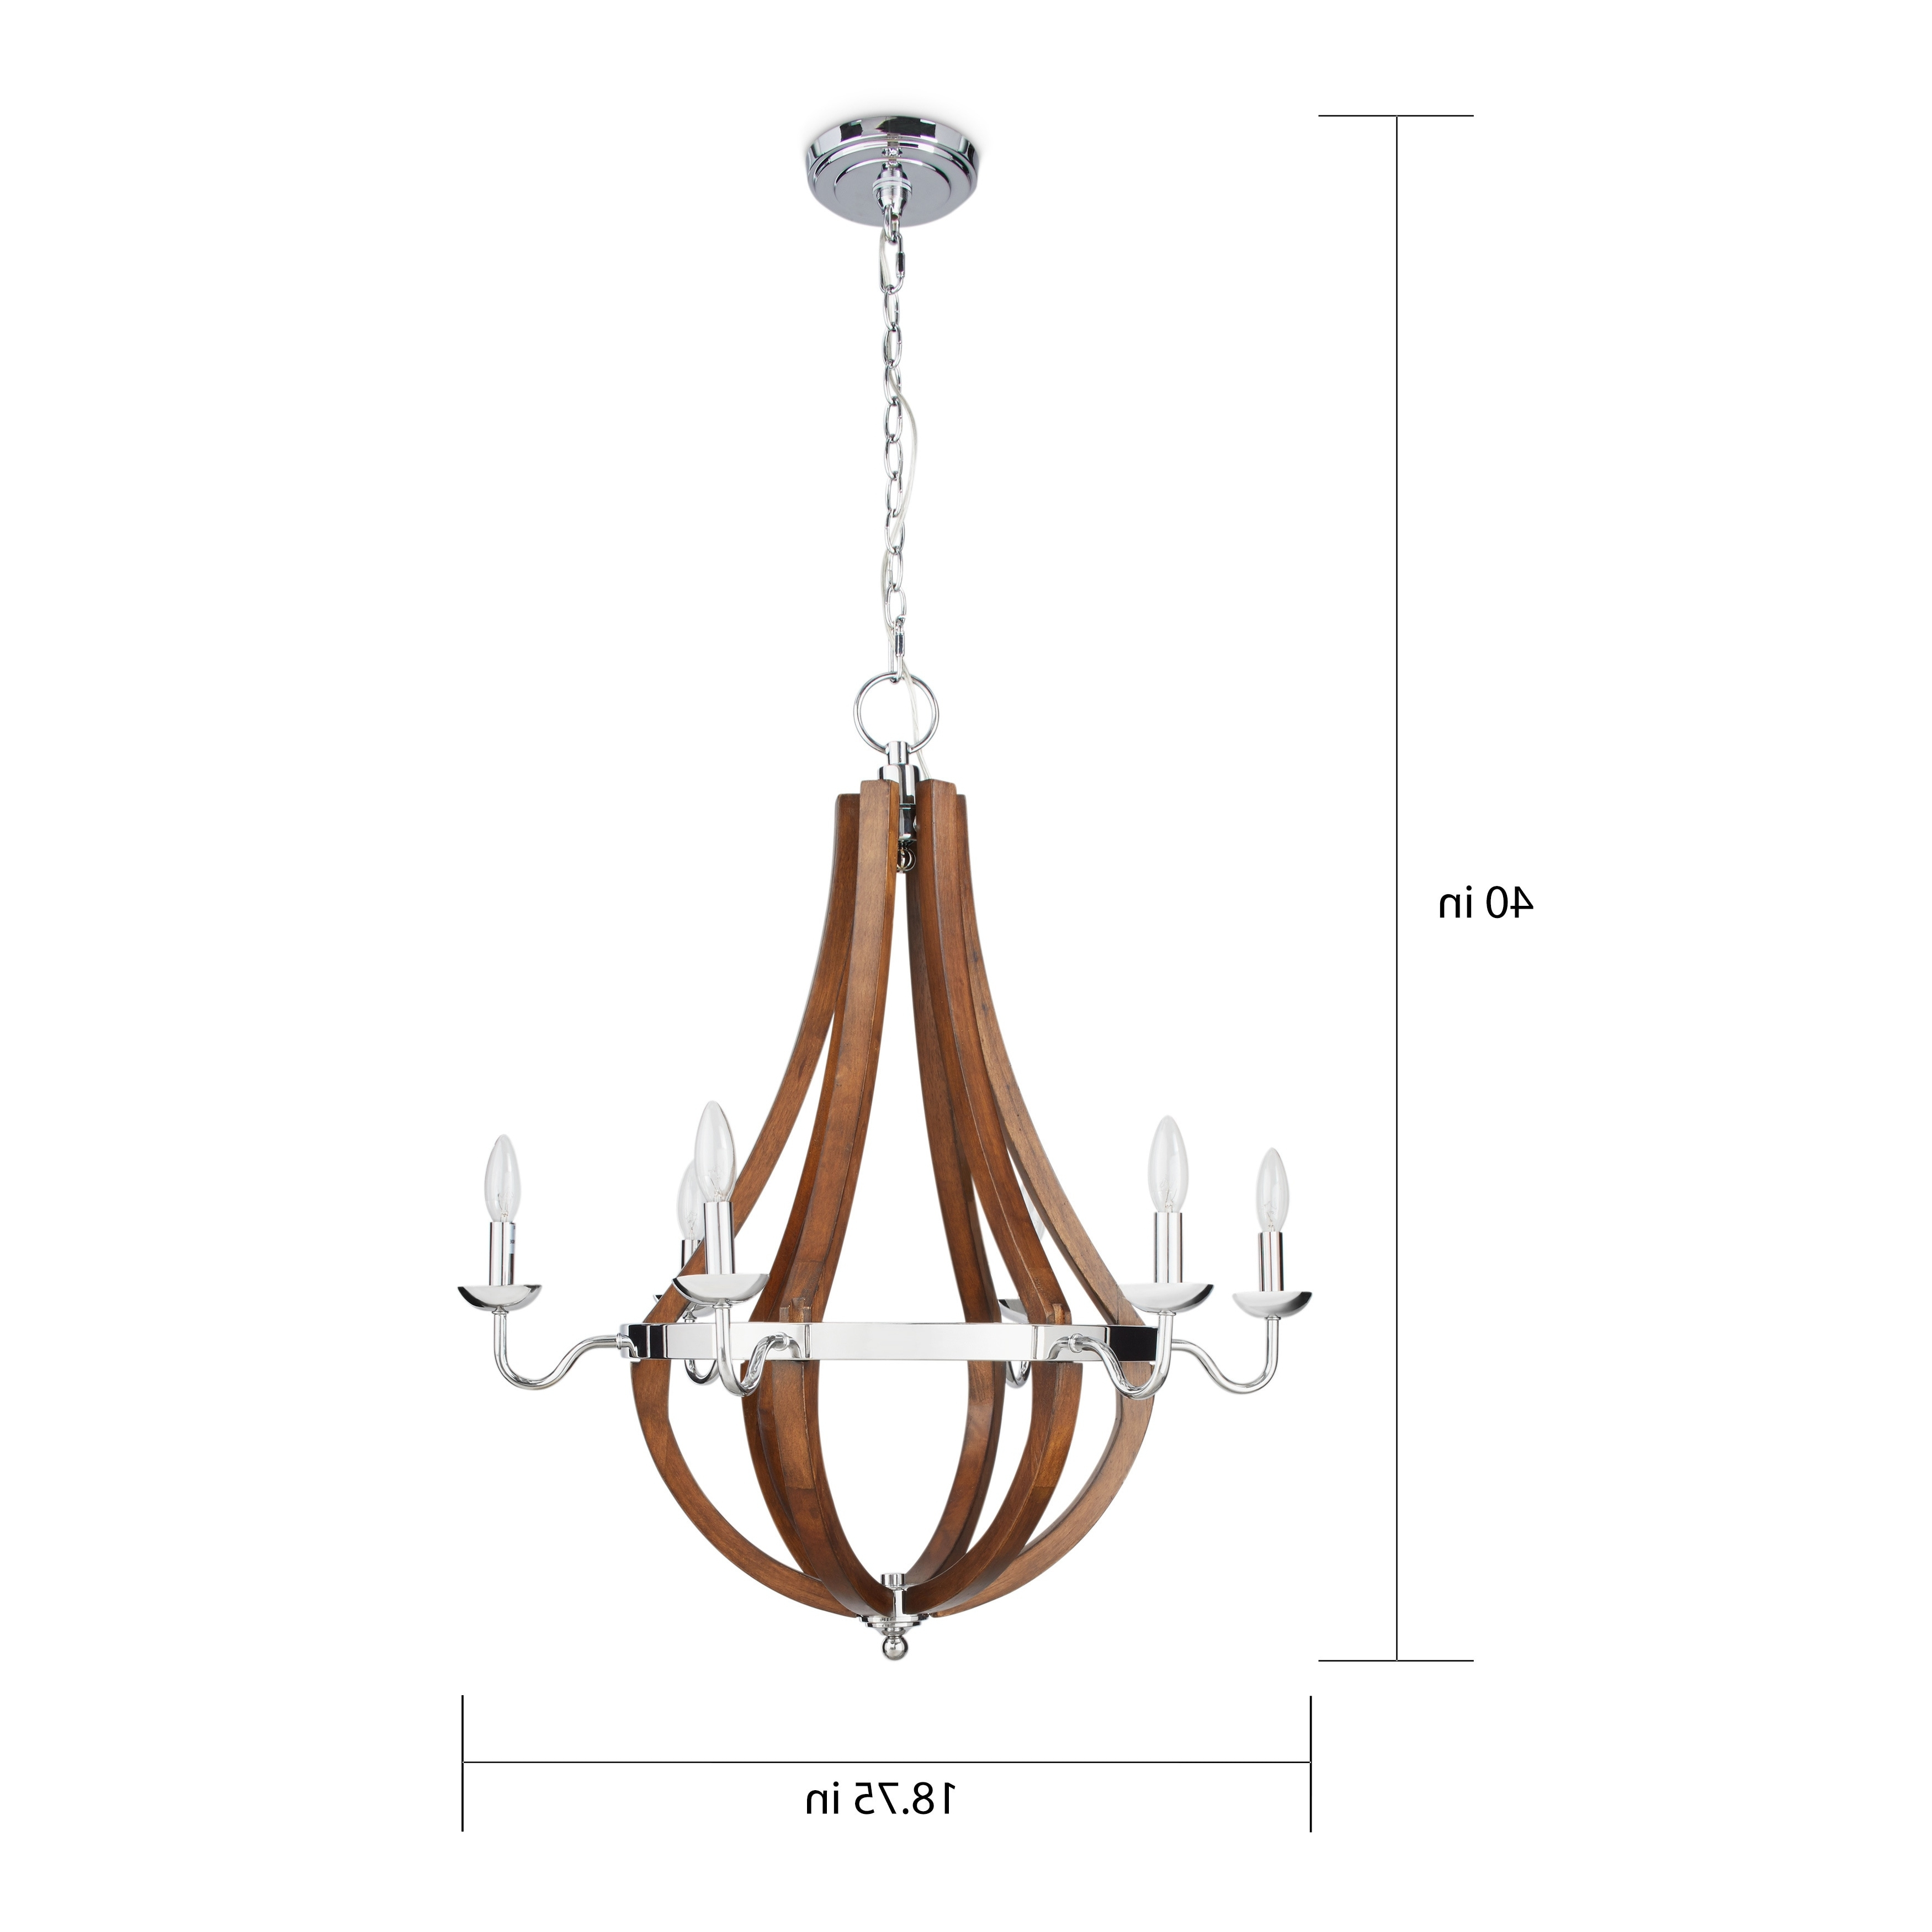 2019 Vineyard Wood And Chrome 6 Light Chandelier – Free Shipping Today Throughout Chrome Chandeliers (View 3 of 20)